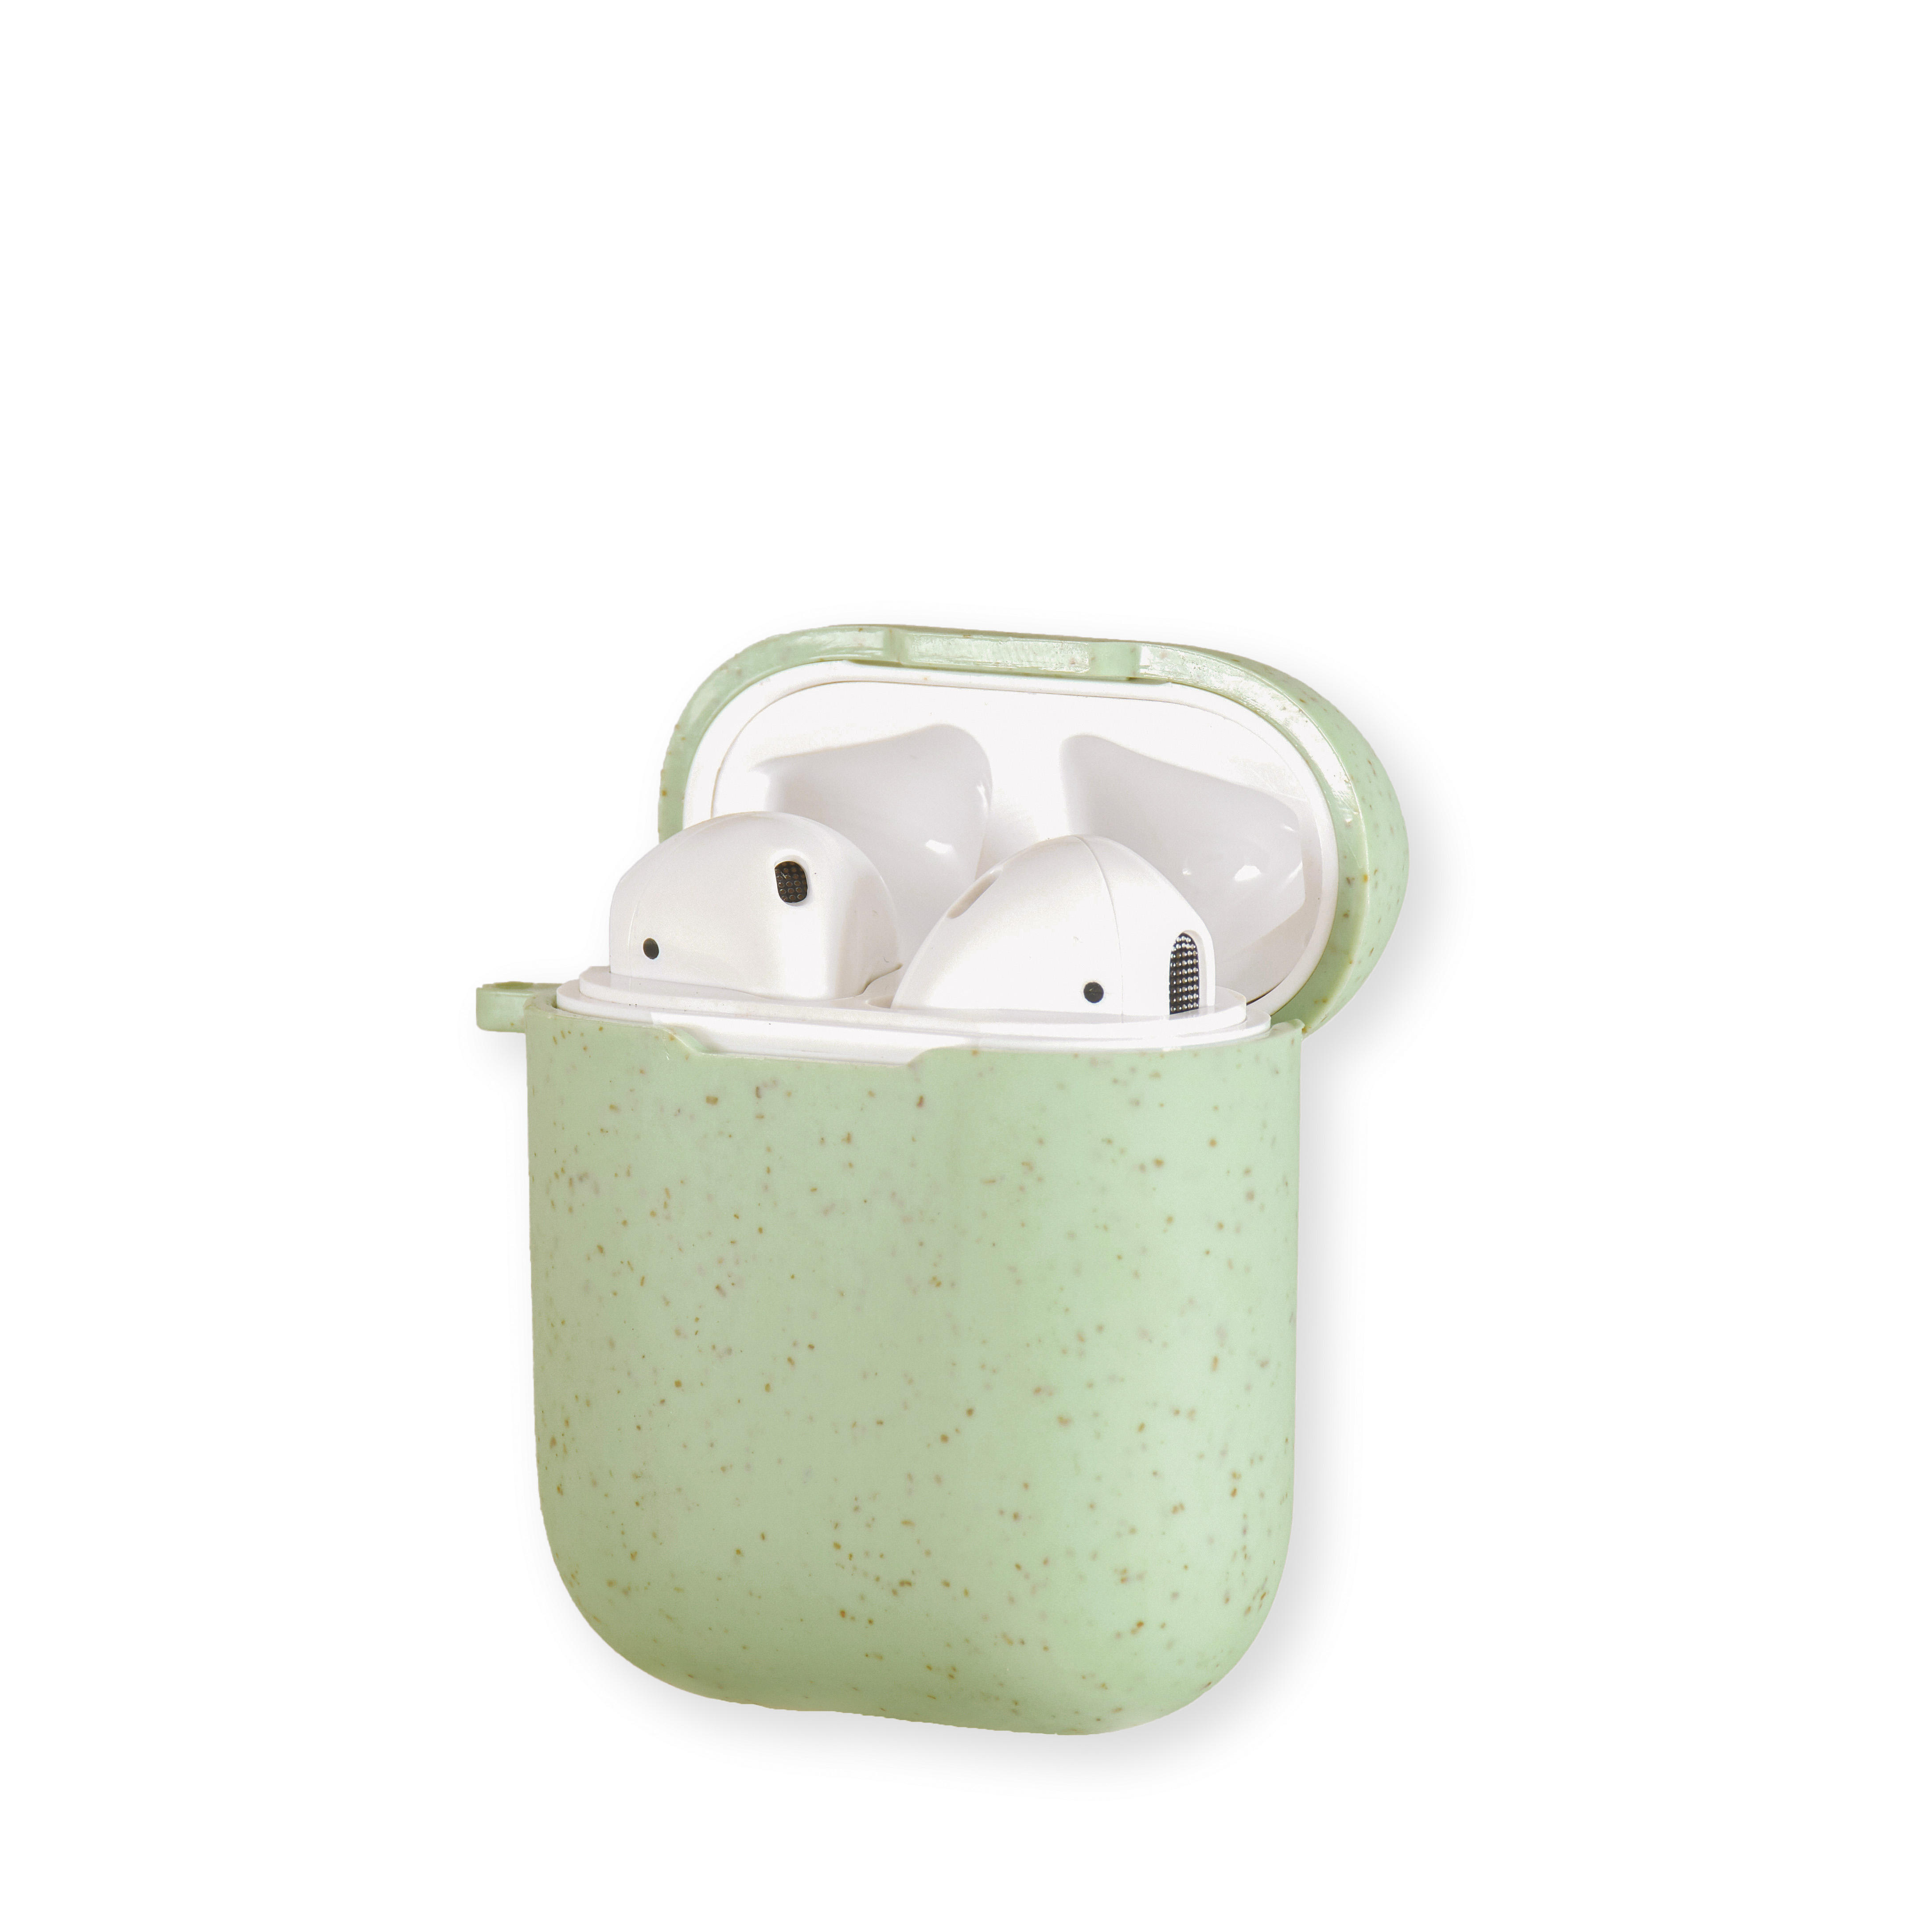 Compostable Protecteur 2 Etui En Plastique Pla Recyclage Dégradable Airpods Iphone